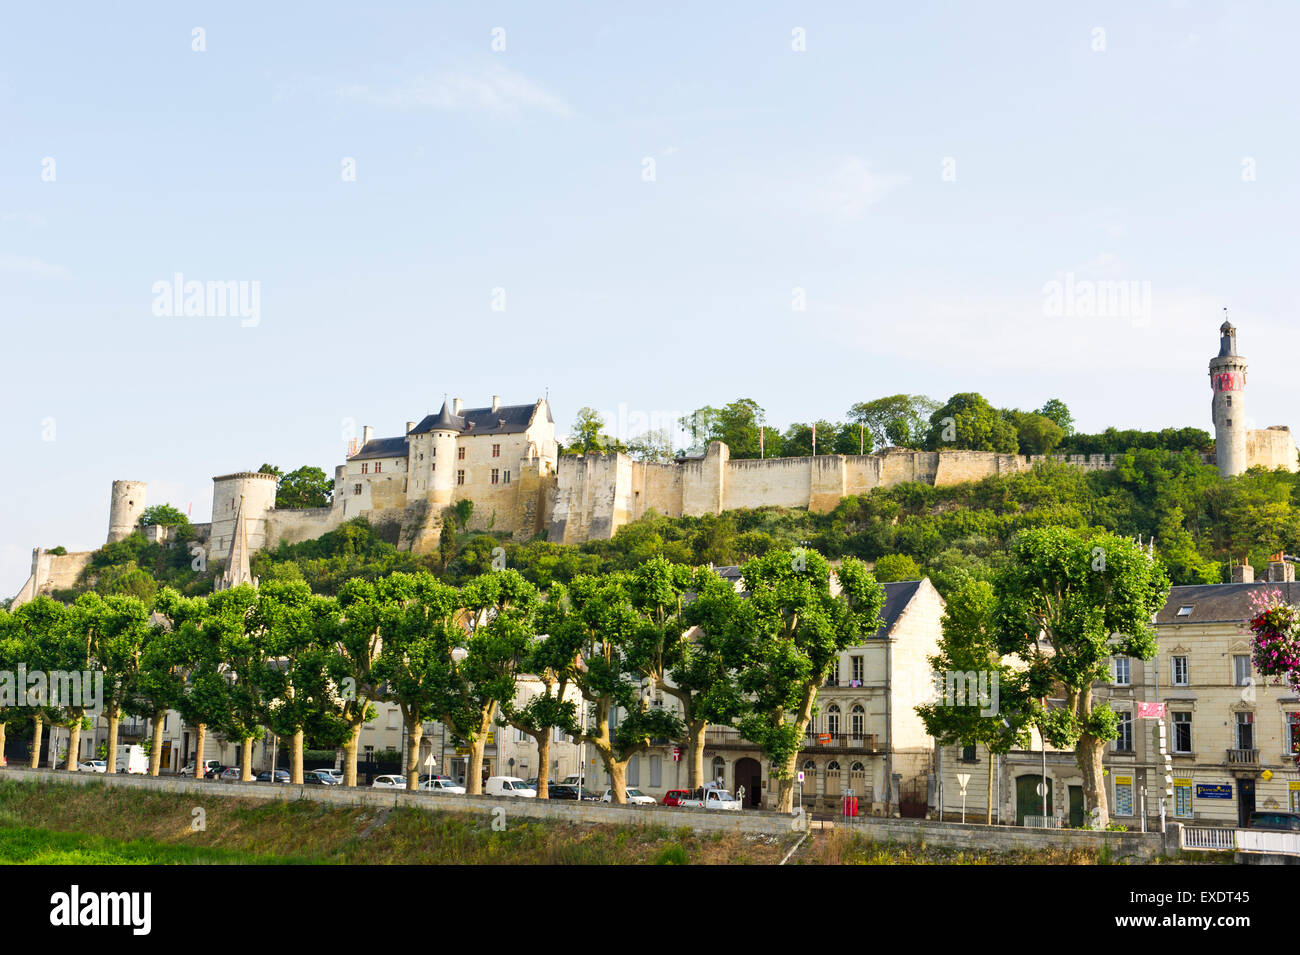 Chinon on the River Vienne, Loire Valley, France Stock Photo